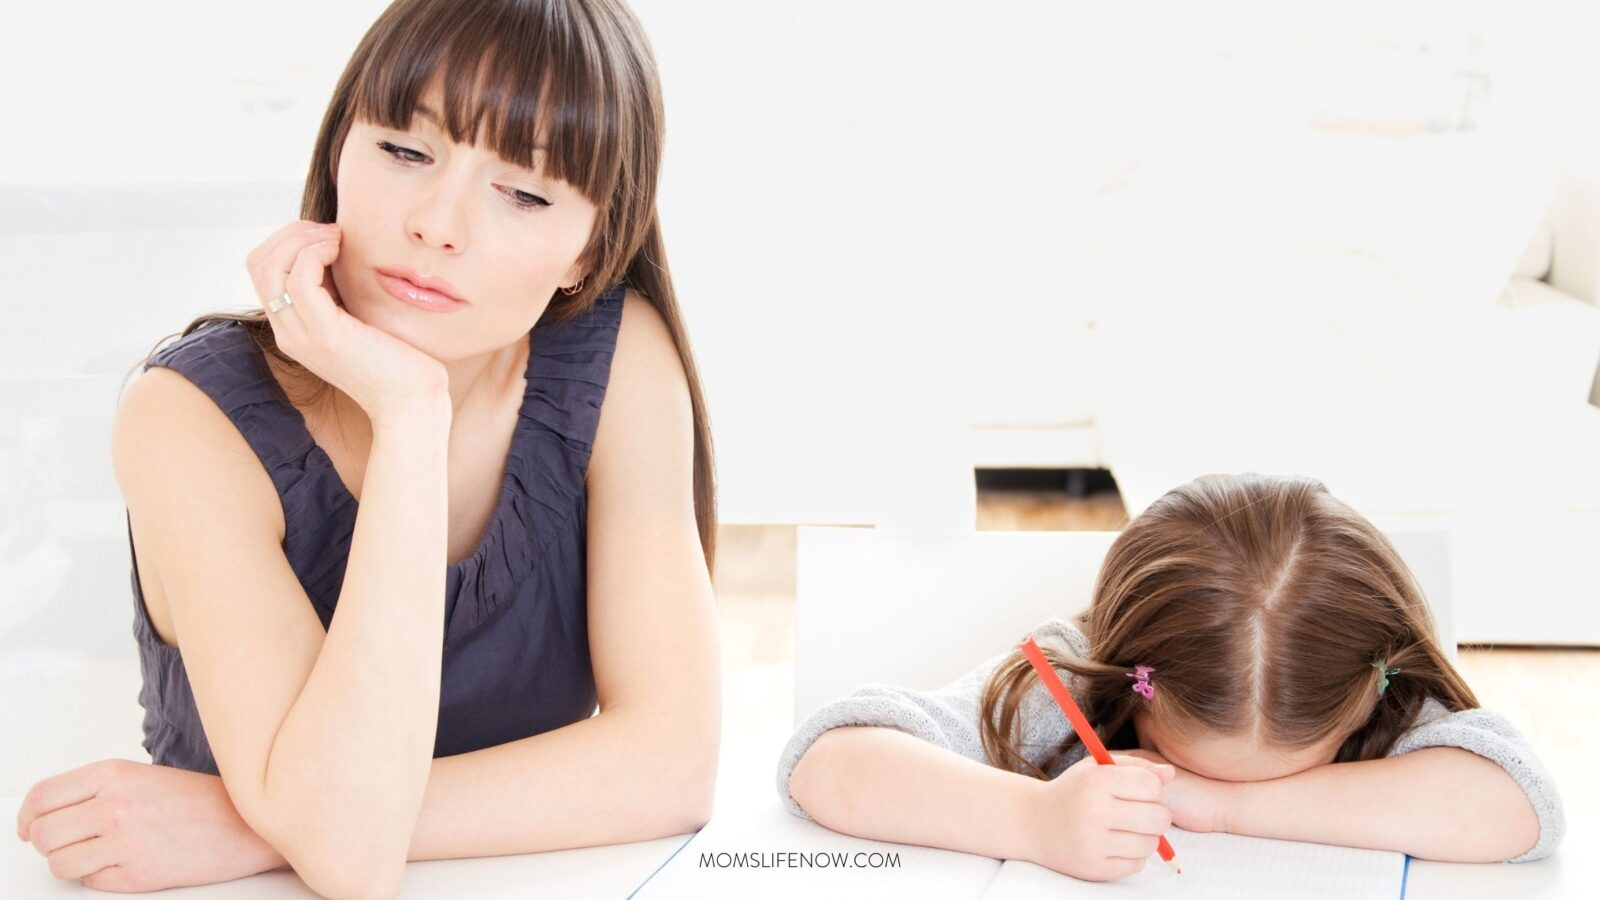 Crucial Parenting Tips To Avoid the Pains of Regret